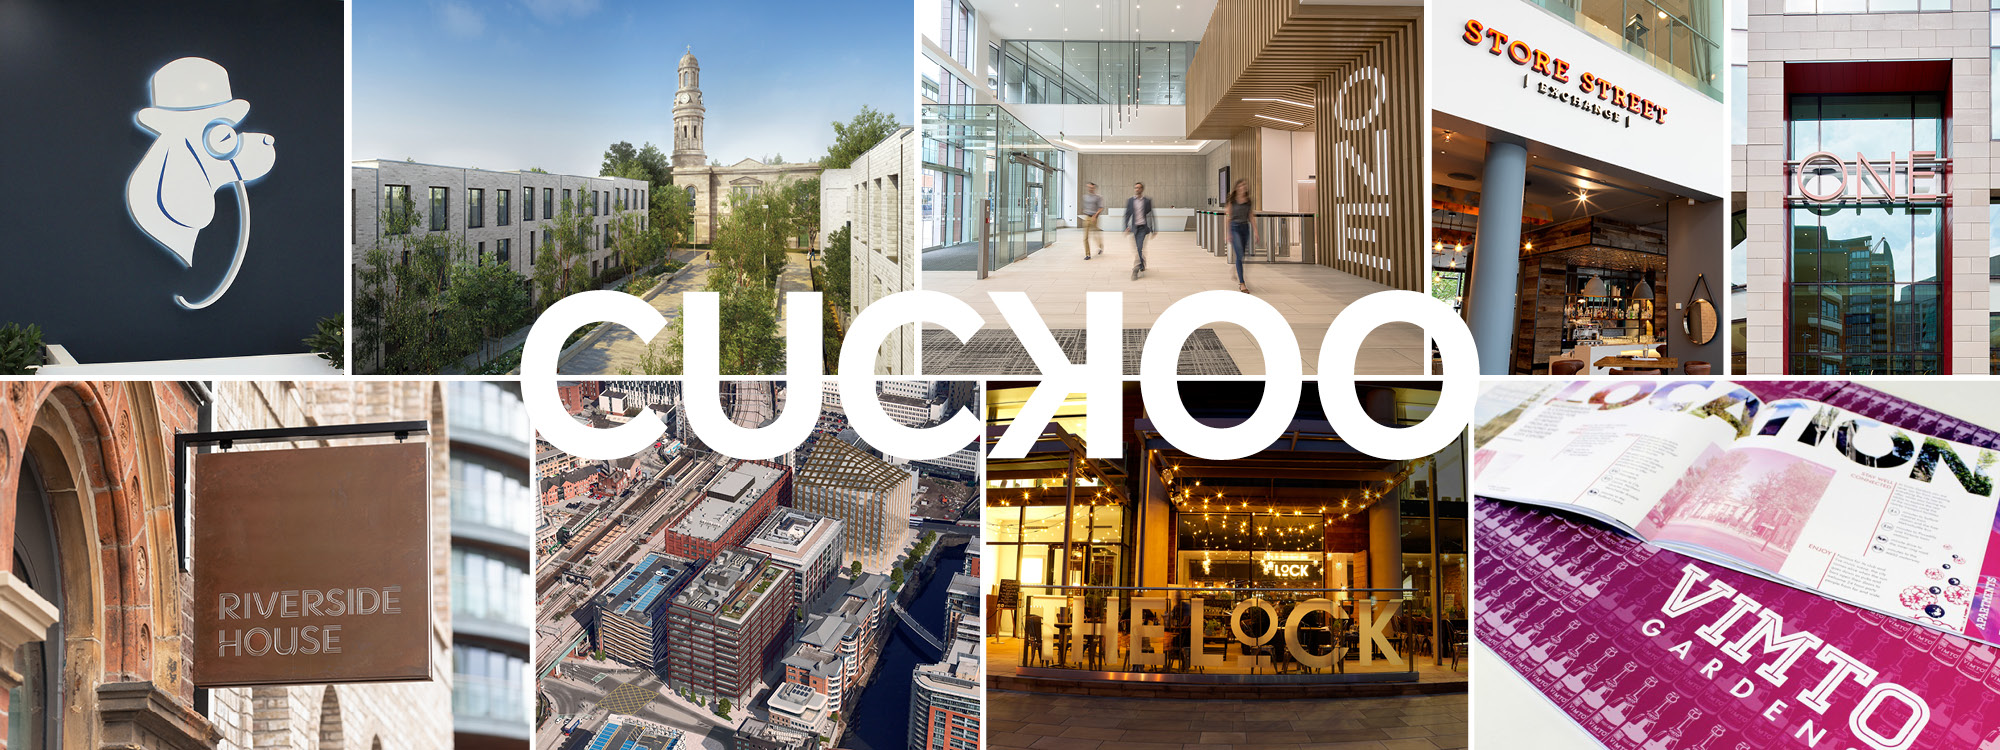 When it comes to commercial and residential property marketing. Nobody does it better than Cuckoo.